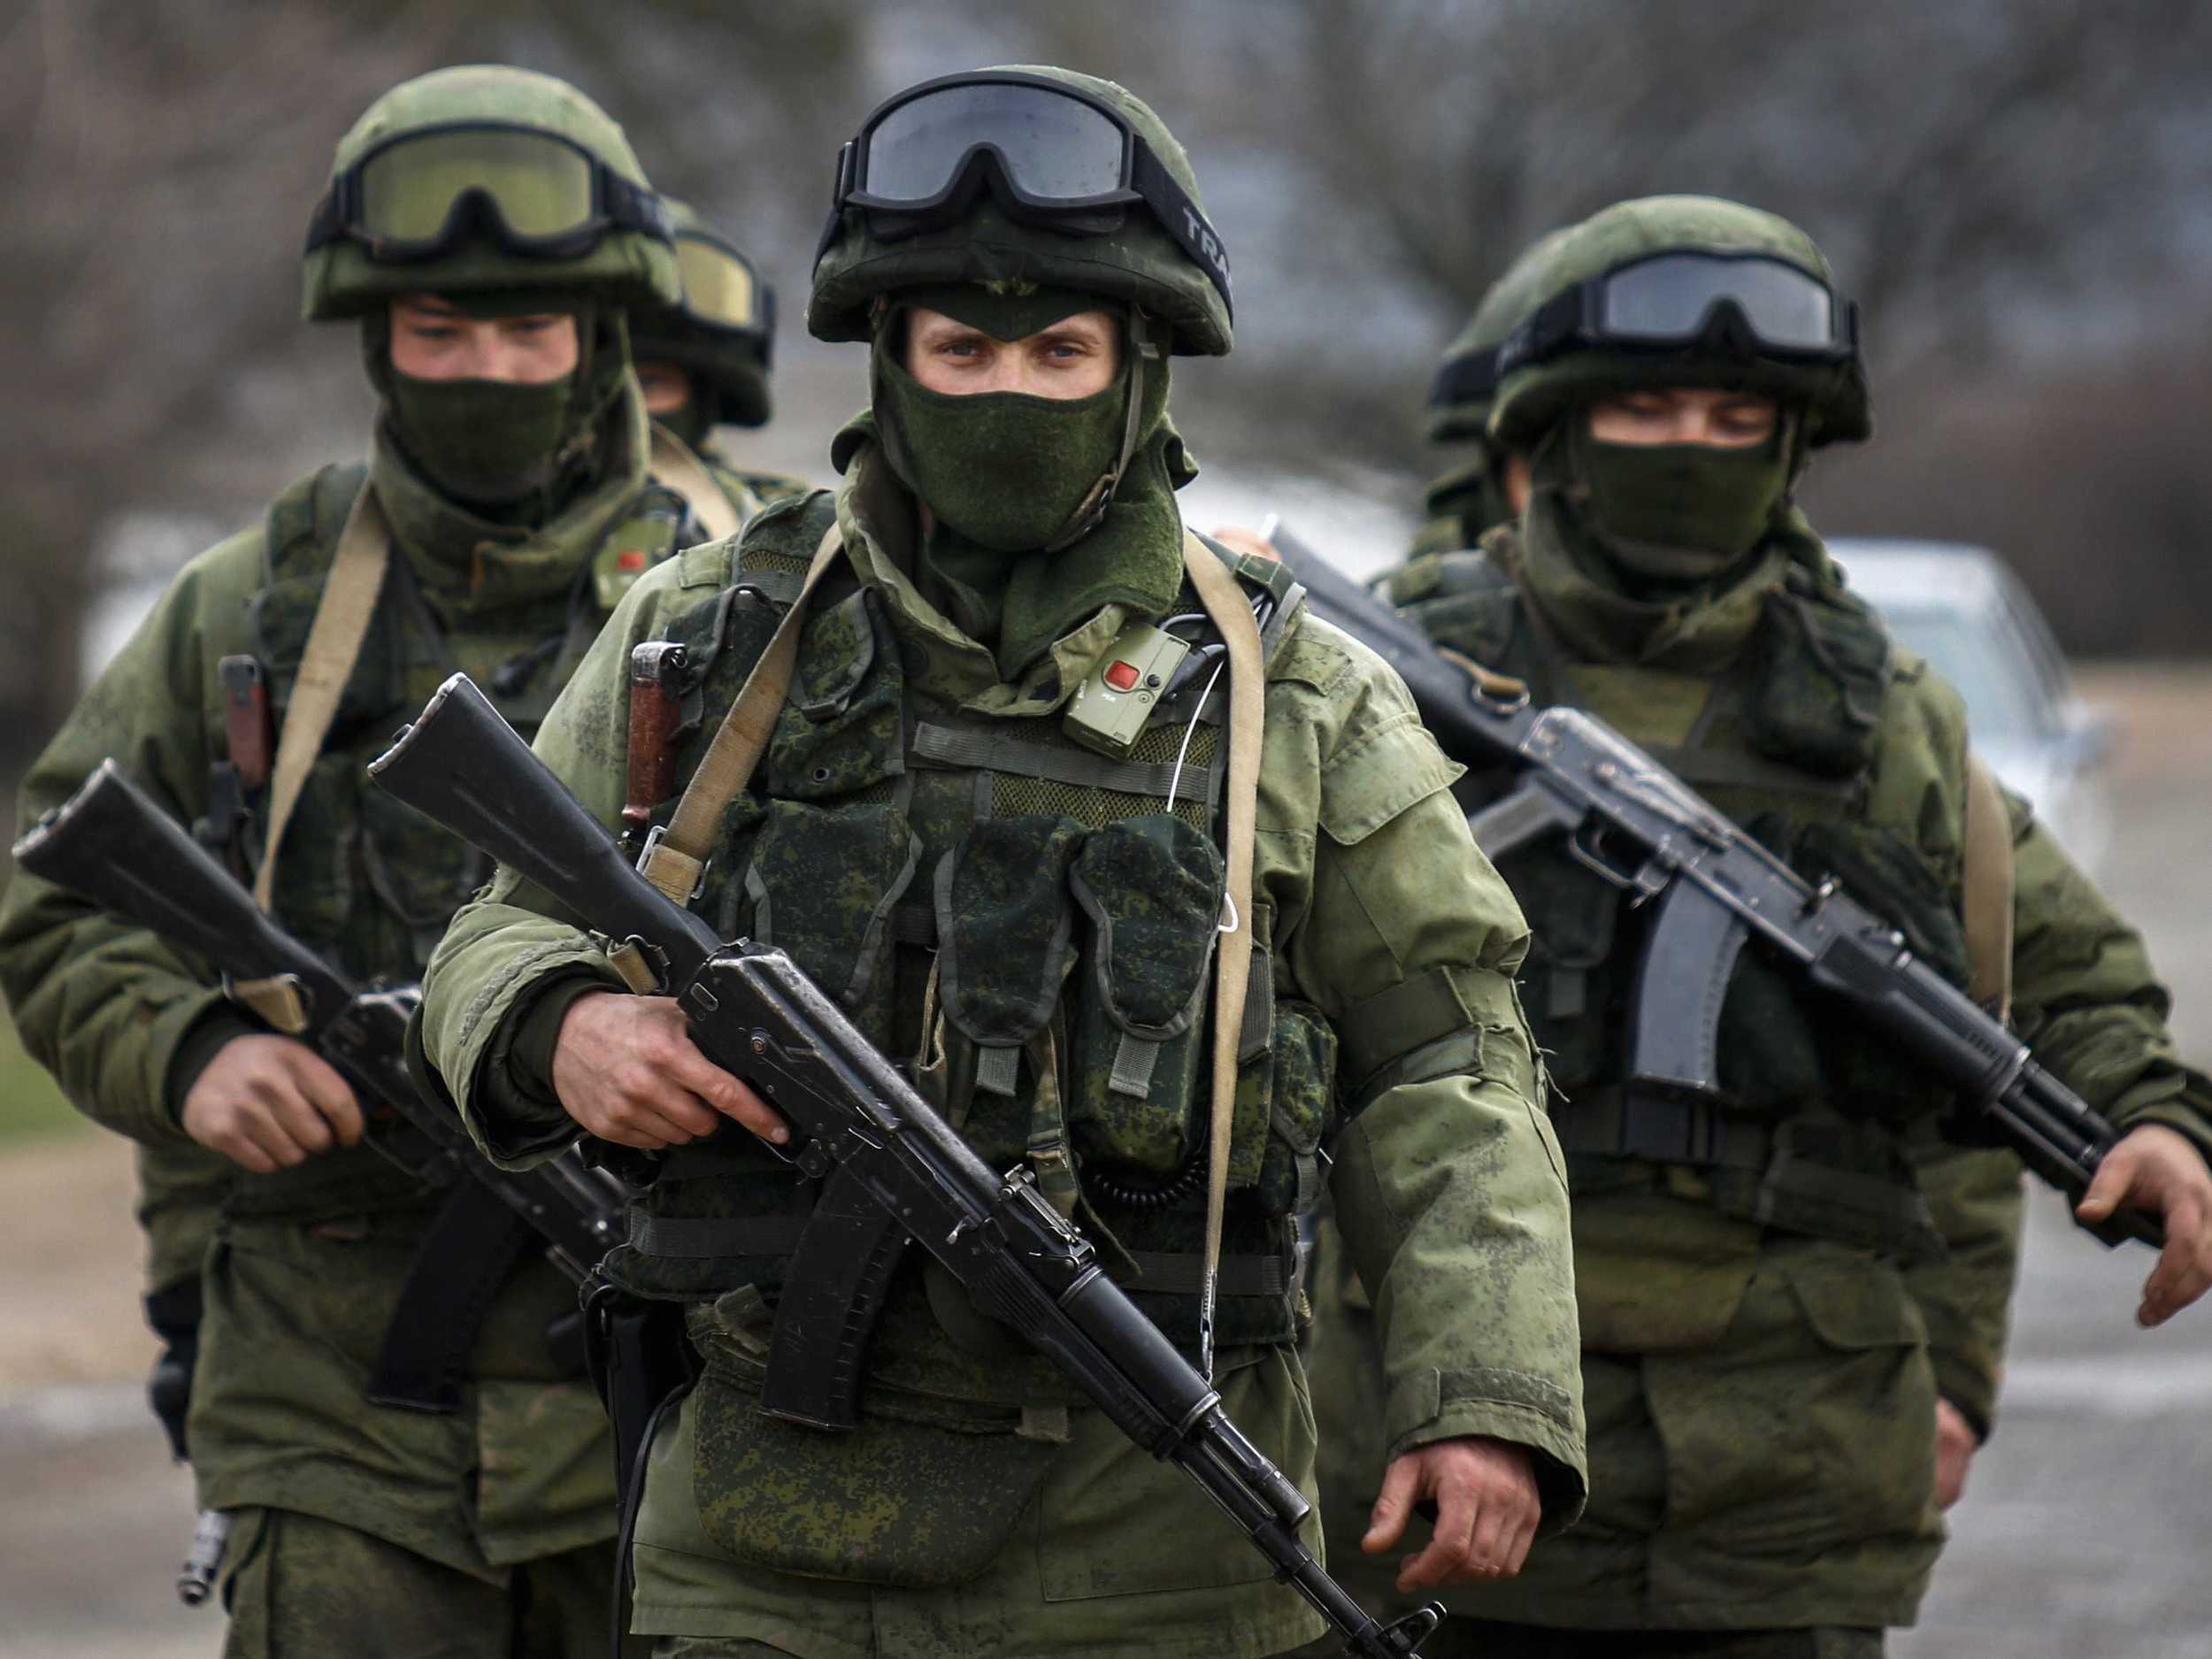 Armed men, believed to be Russian servicemen, march outside an Ukrainian military base in the village of Perevalnoye near the Crimean city of Simferopol March 9, 2014. ( Reuters Photo:Thomas Peter )